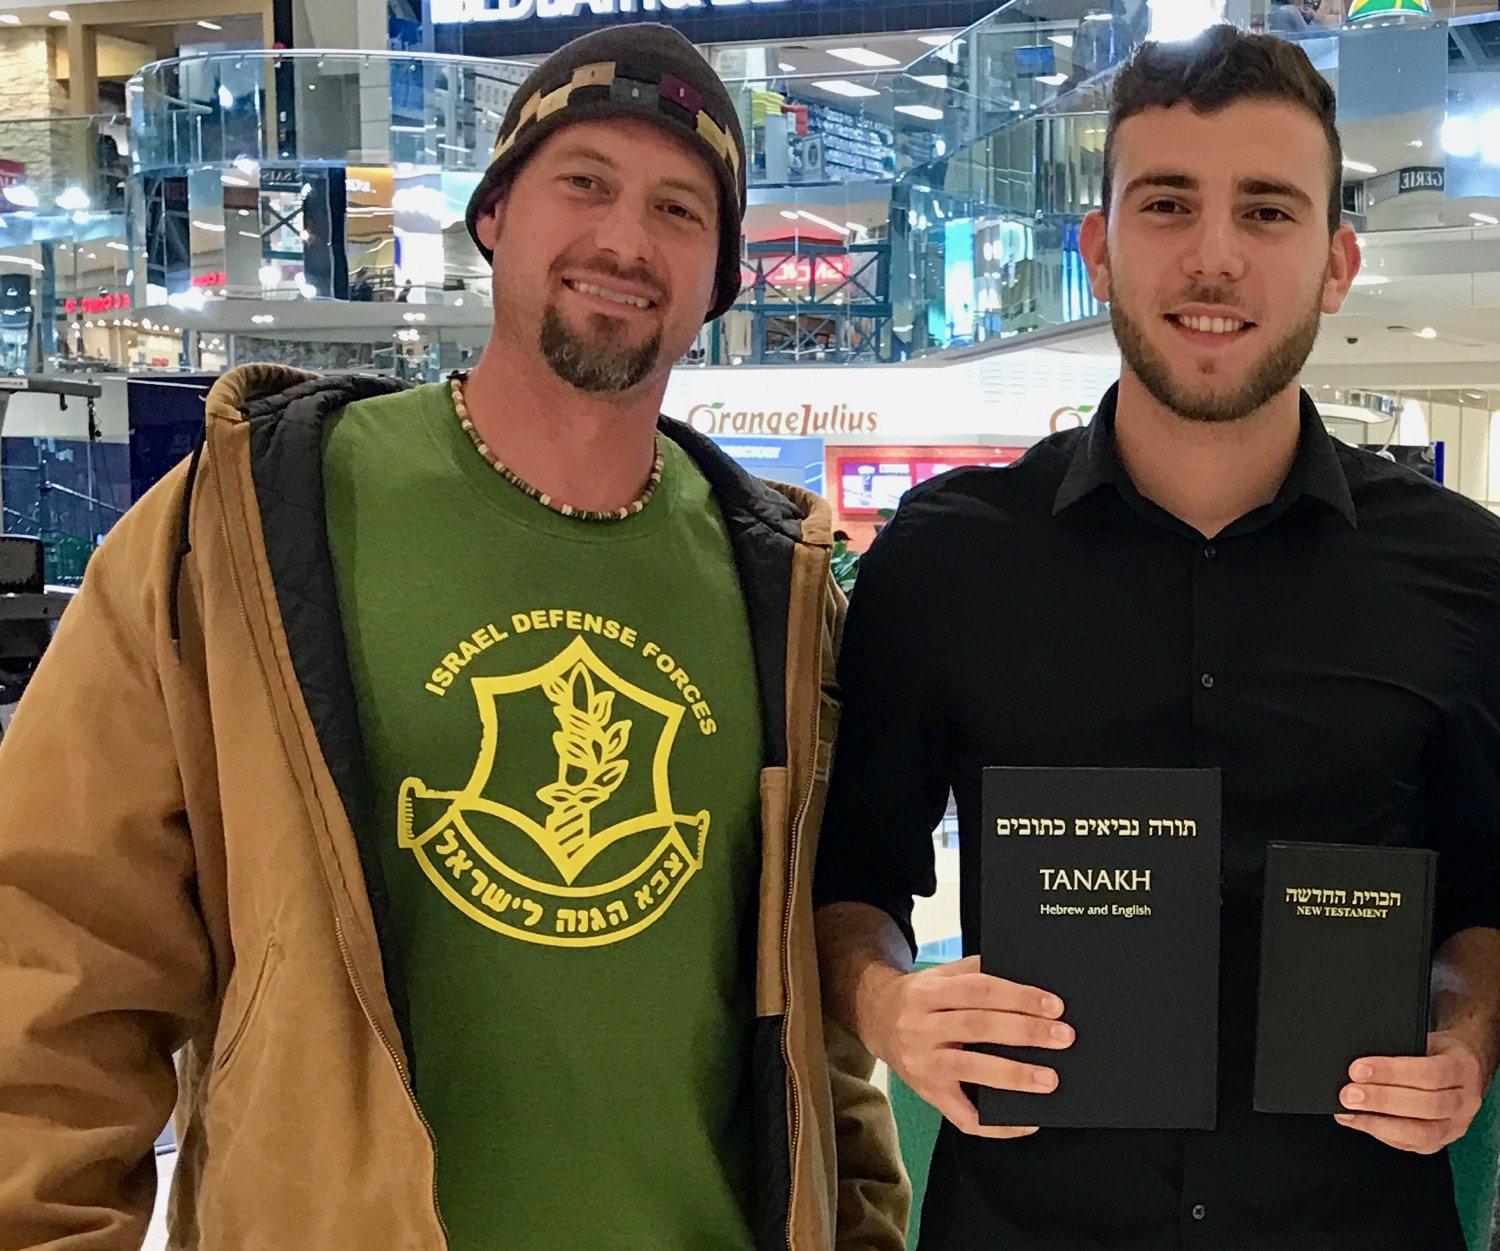 Last Fall, this young Israeli was thrilled to receive a free copy of the Hebrew Bible and a Hebrew New Testament while working at a mall kiosk in Edmonton, Alberta.